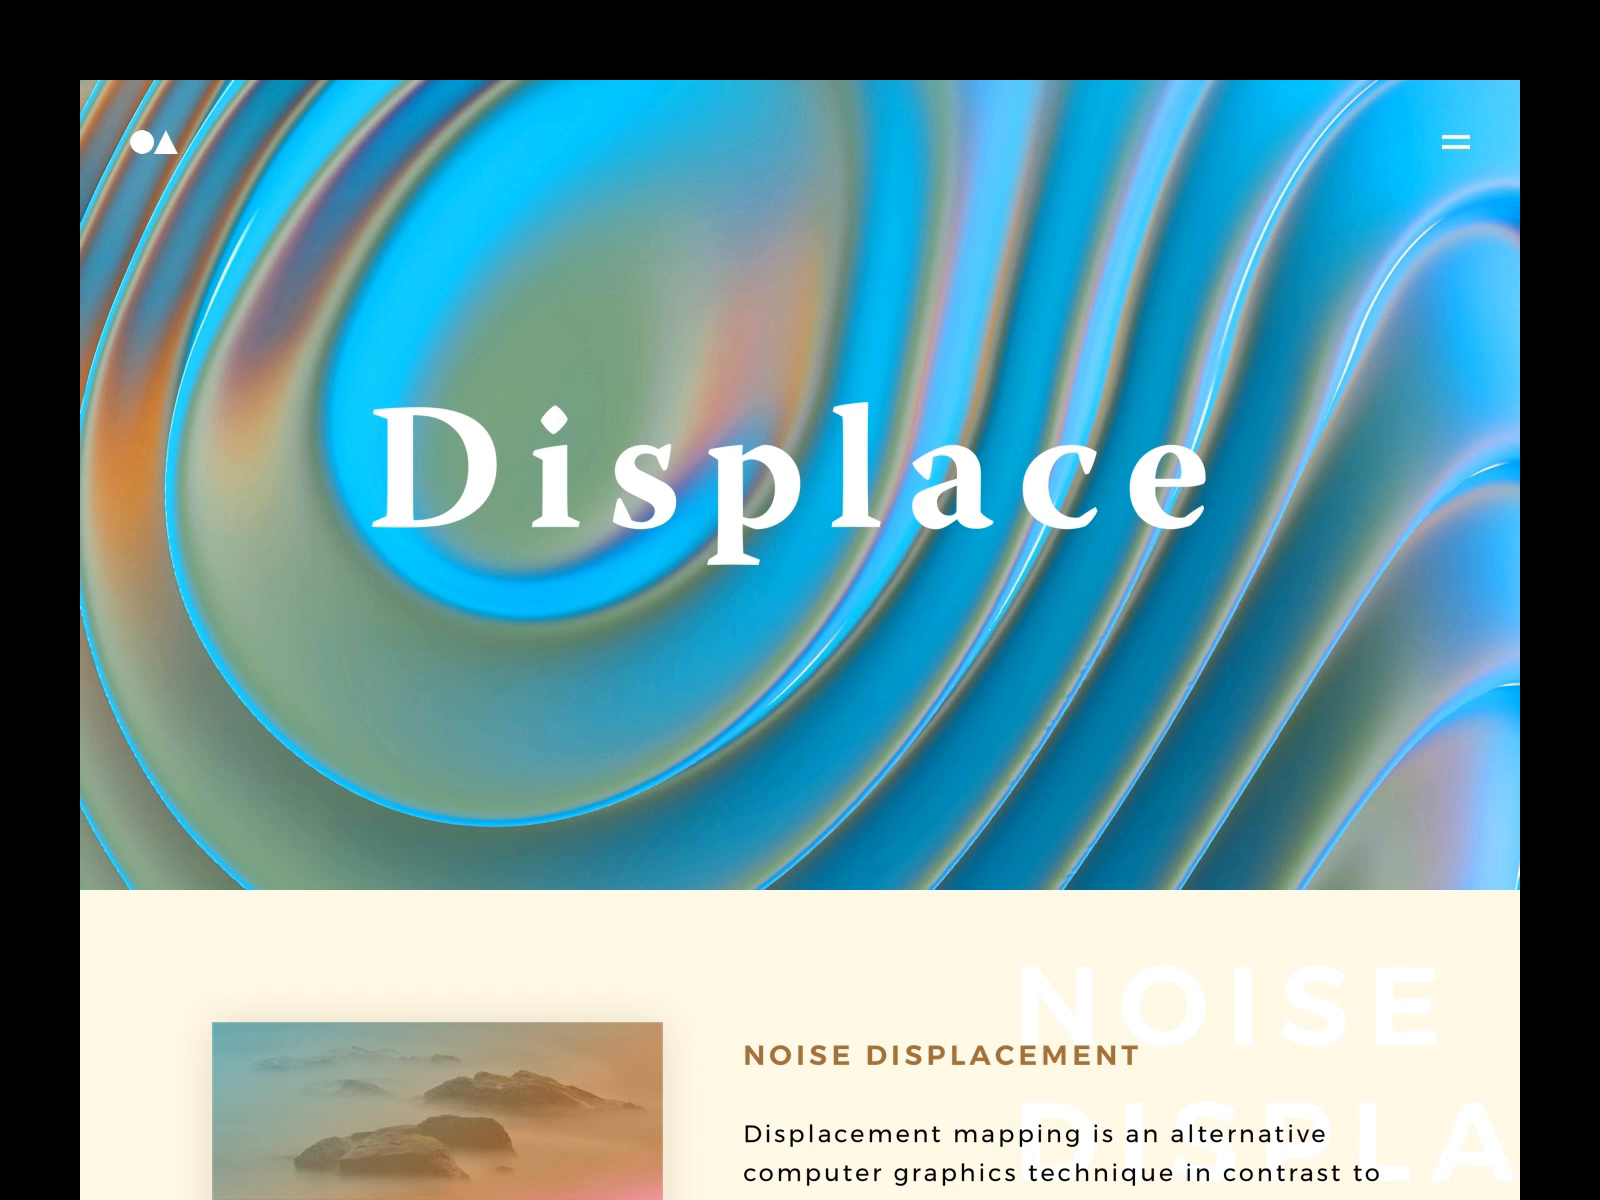 Displace noise displacement